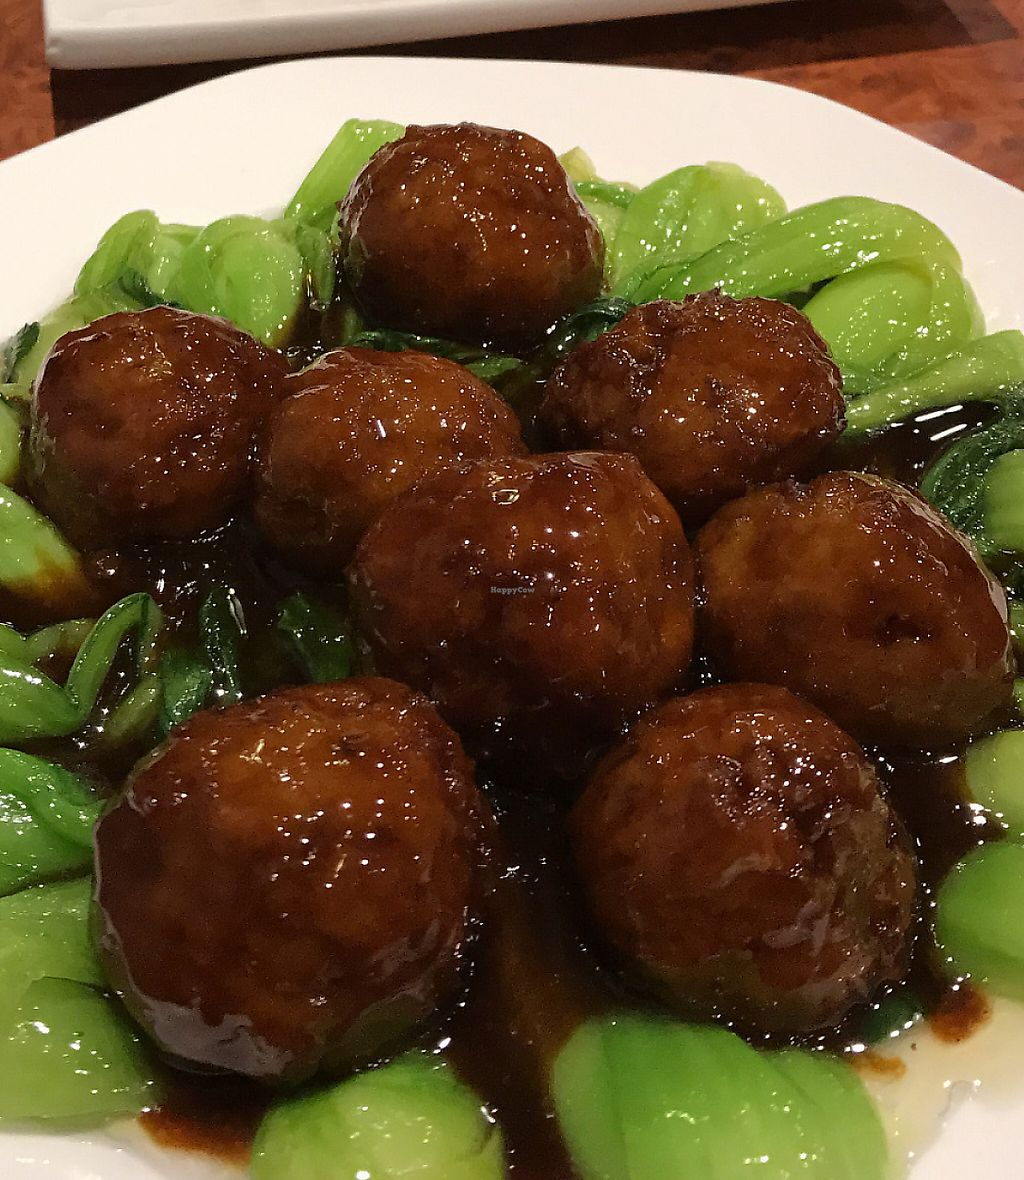 """Photo of Gong De Lin - Godly - Nanjing Rd  by <a href=""""/members/profile/Anjaneya"""">Anjaneya</a> <br/>""""Meatballs"""" and Greens <br/> May 6, 2017  - <a href='/contact/abuse/image/13/265239'>Report</a>"""